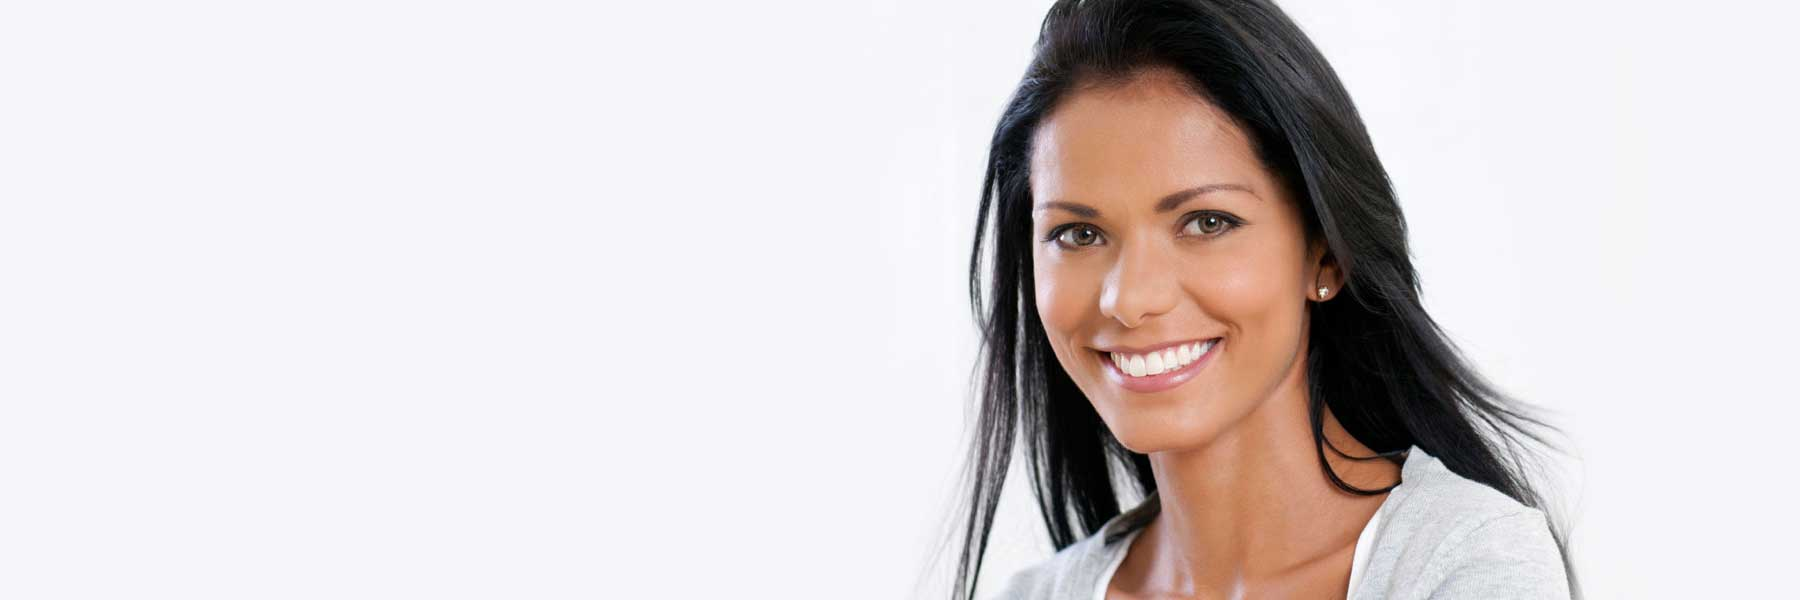 Root Canal Therapy in Northridge and Manhattan Beach banner image